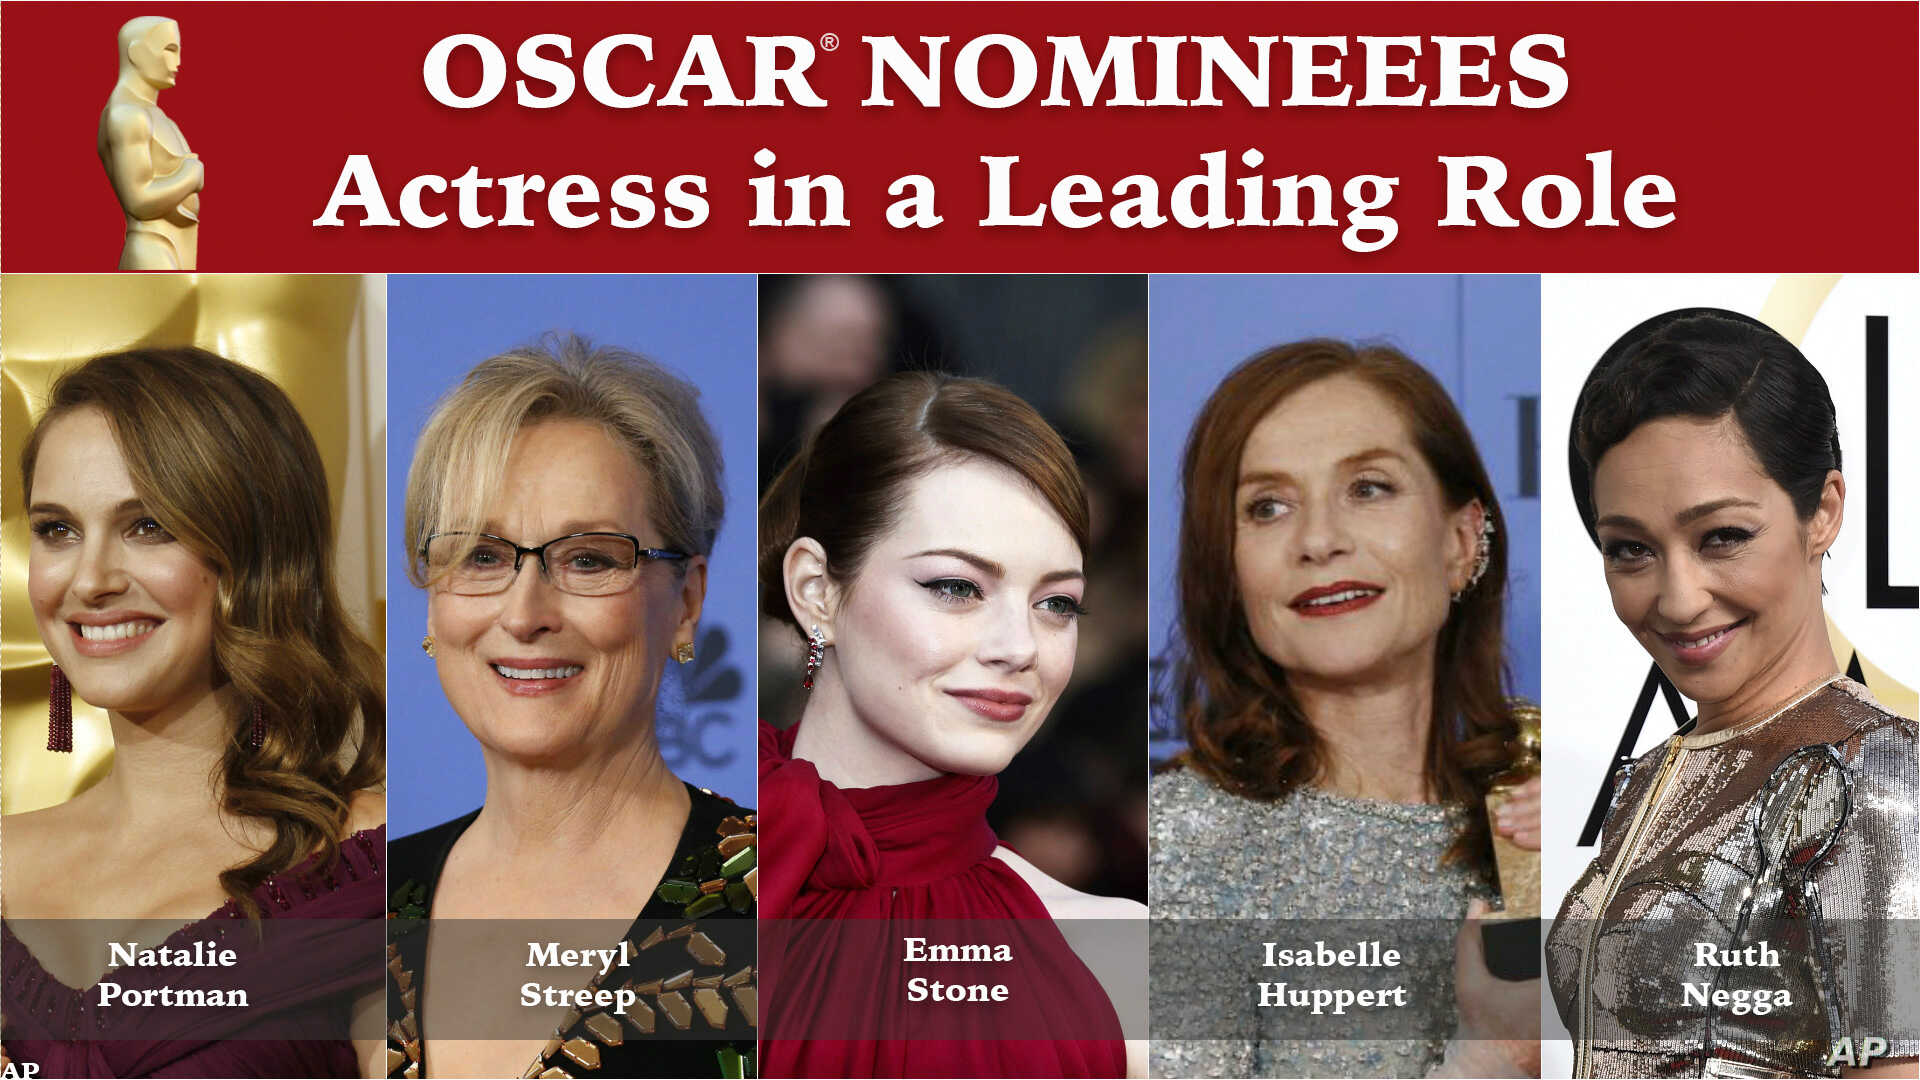 Nominees for Best Actress in a Leading Role